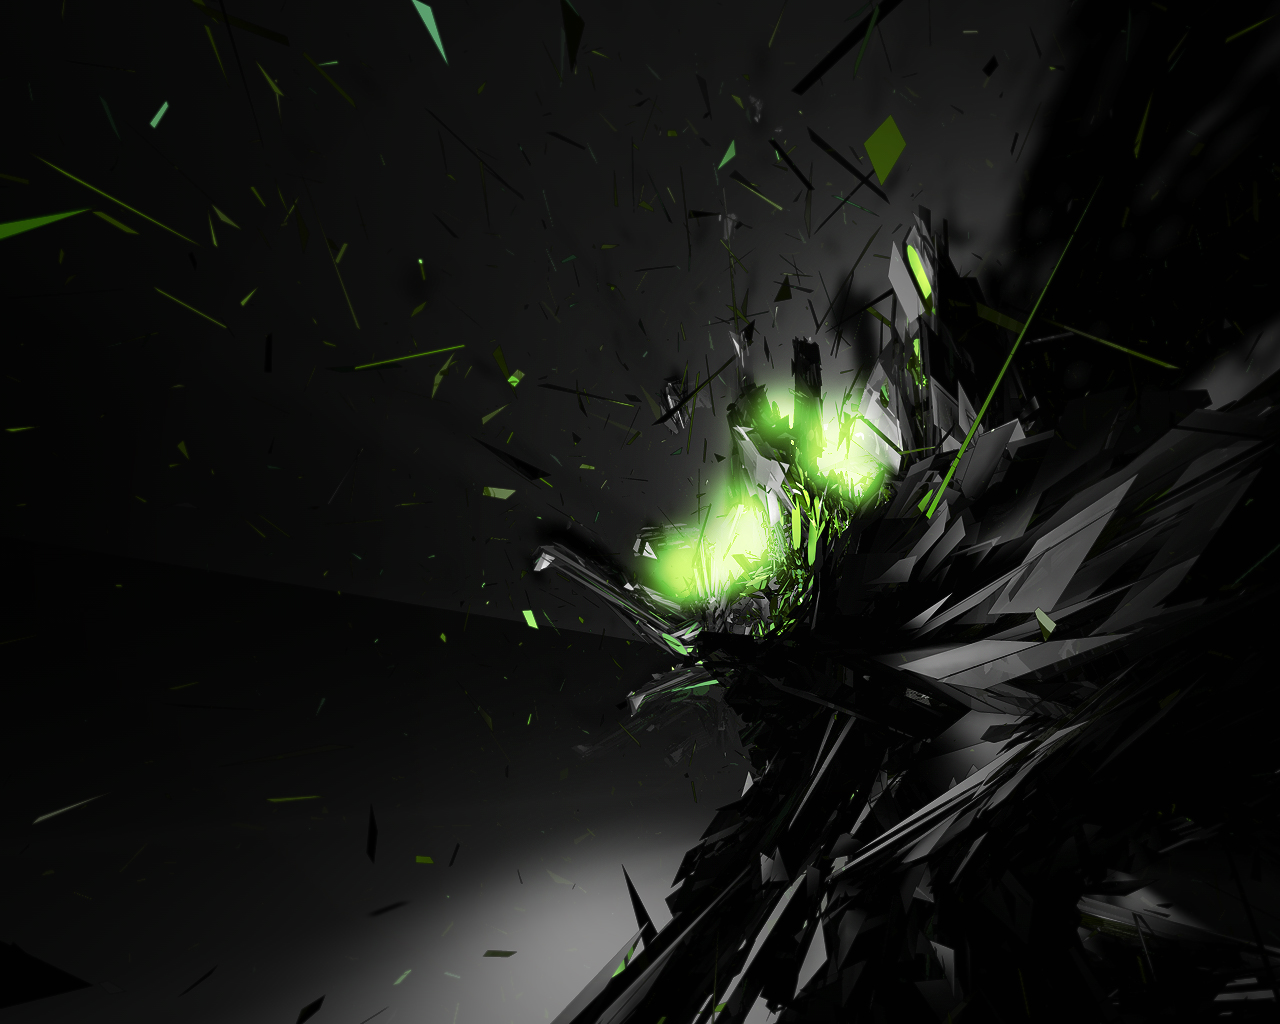 toxic wallpaper by m0rfgfx customization wallpaper hdtv widescreen 1280x1024